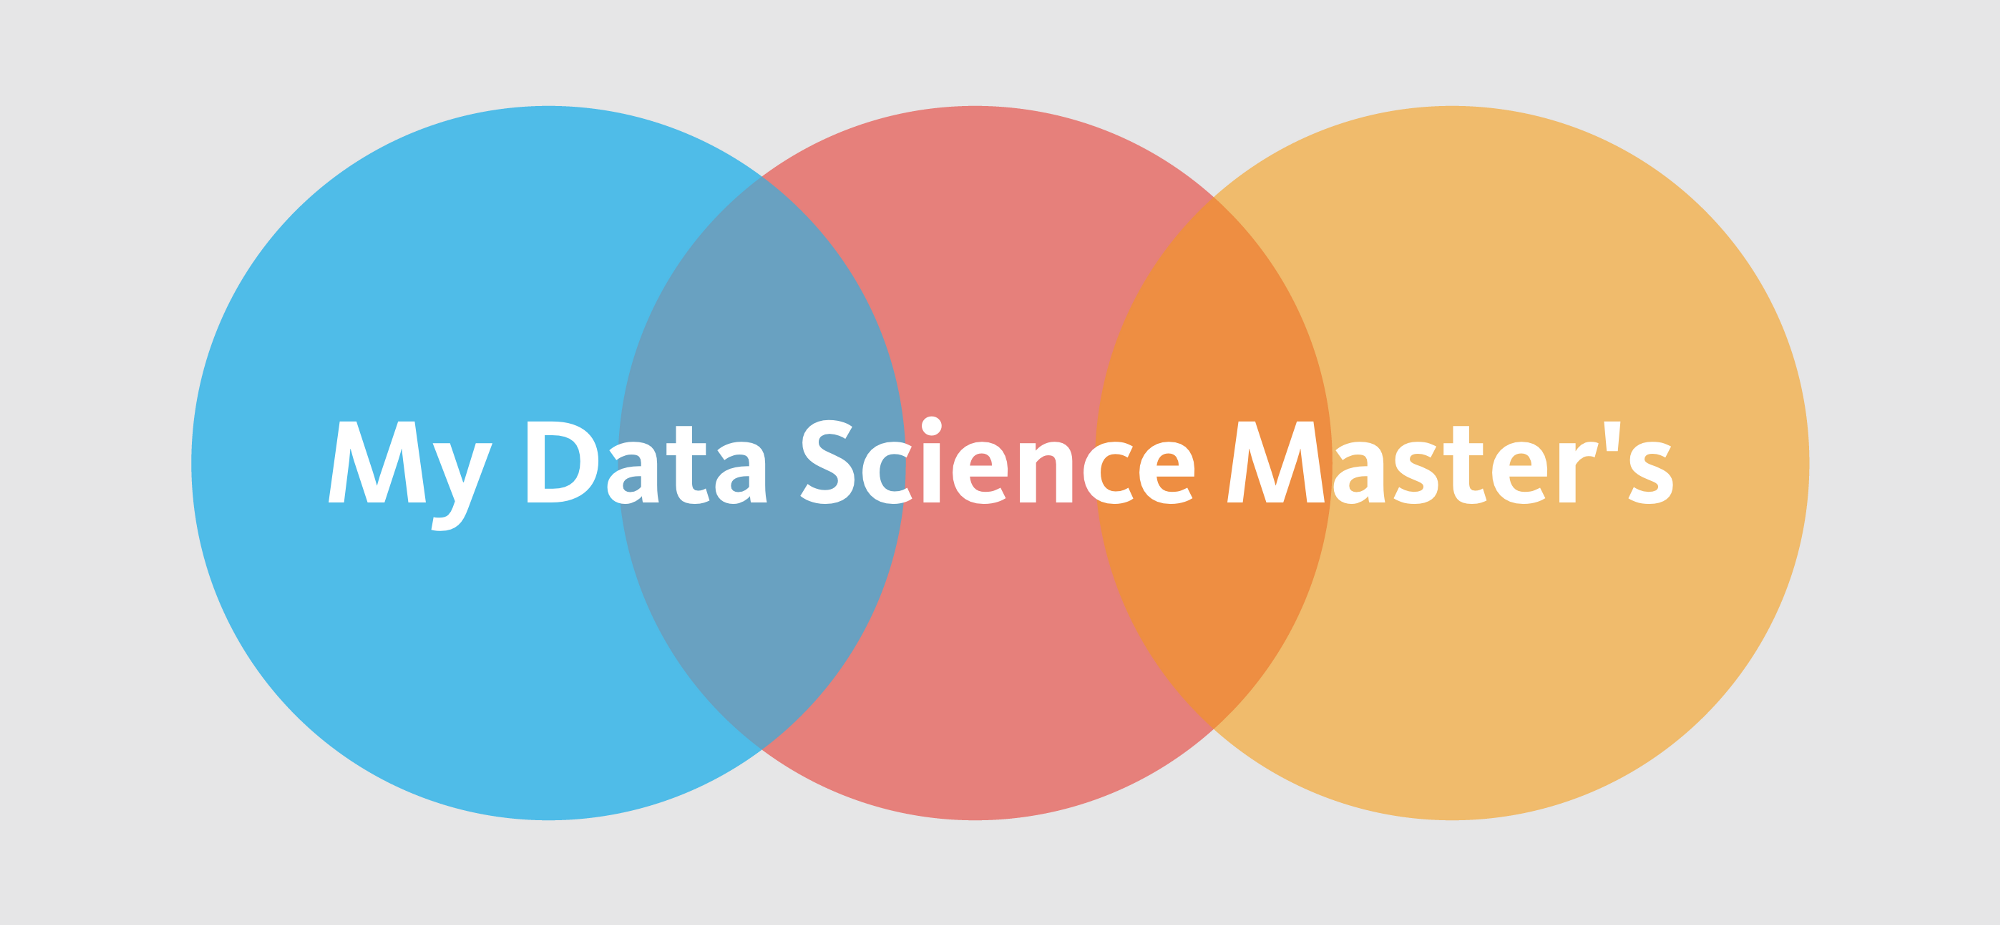 My Data Science Master's